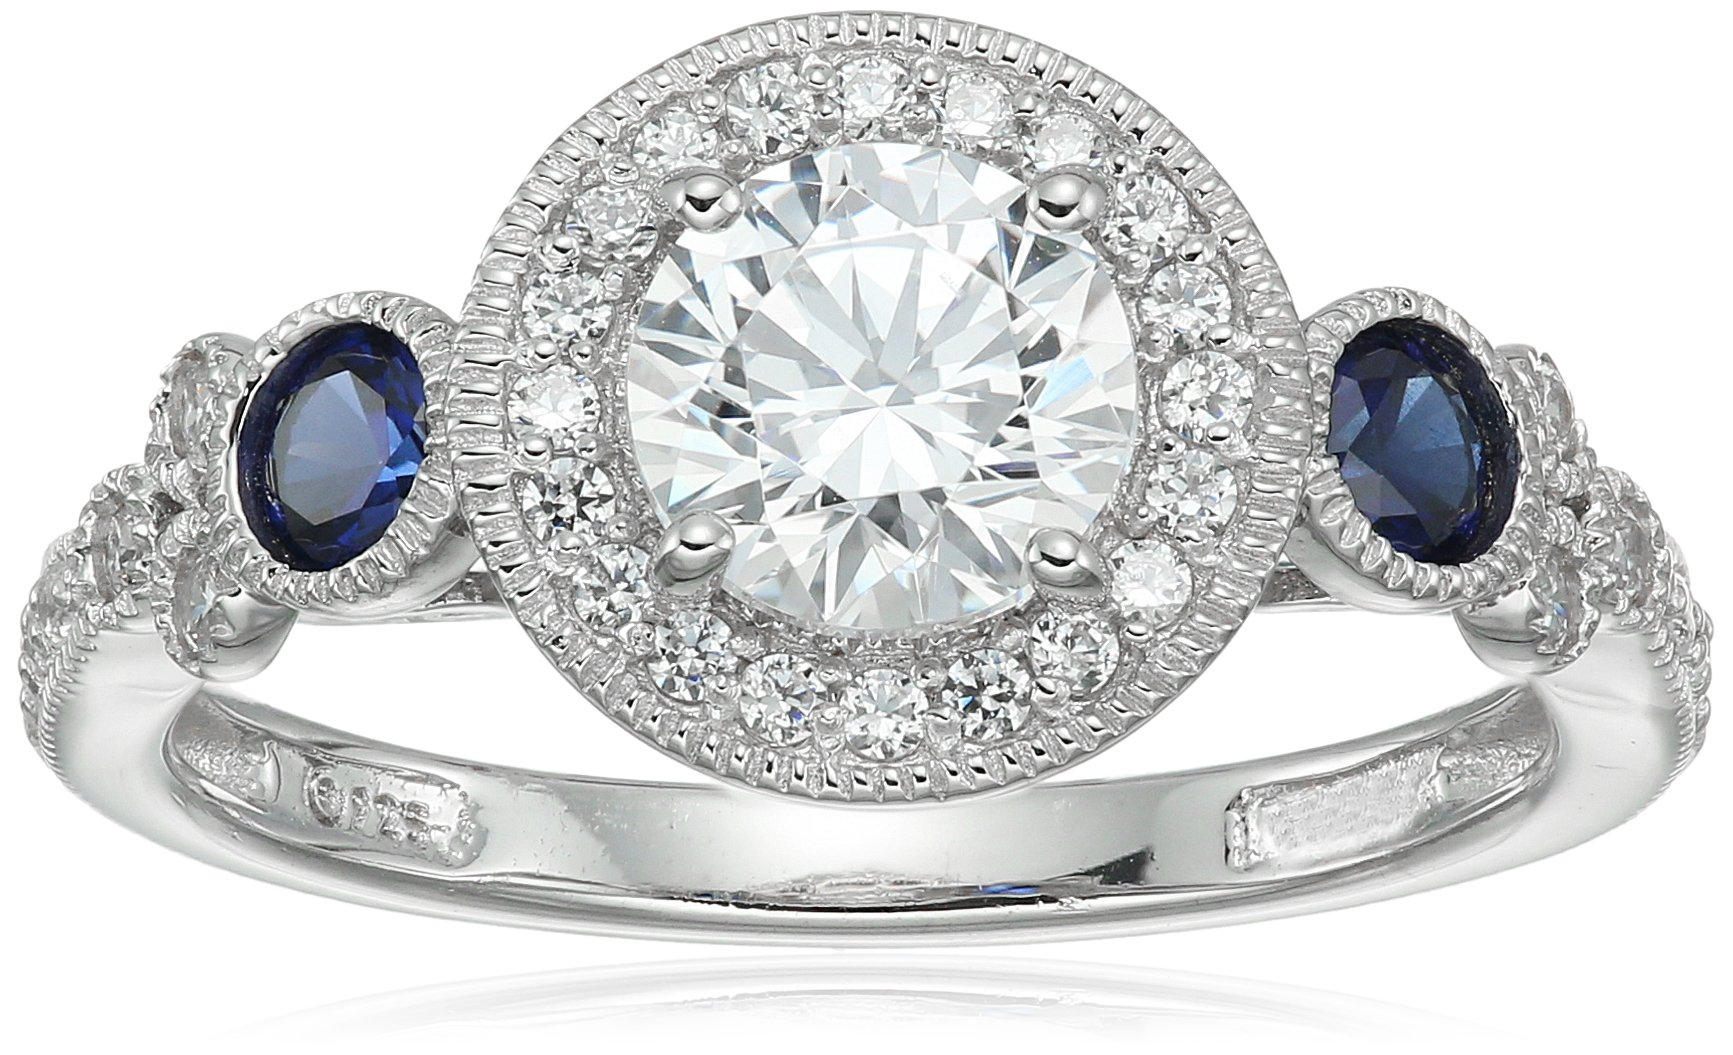 Platinum-Plated Sterling Silver Swarovski Zirconia Antique Round-Cut and Created Sapphire Ring size 8 by Amazon Collection